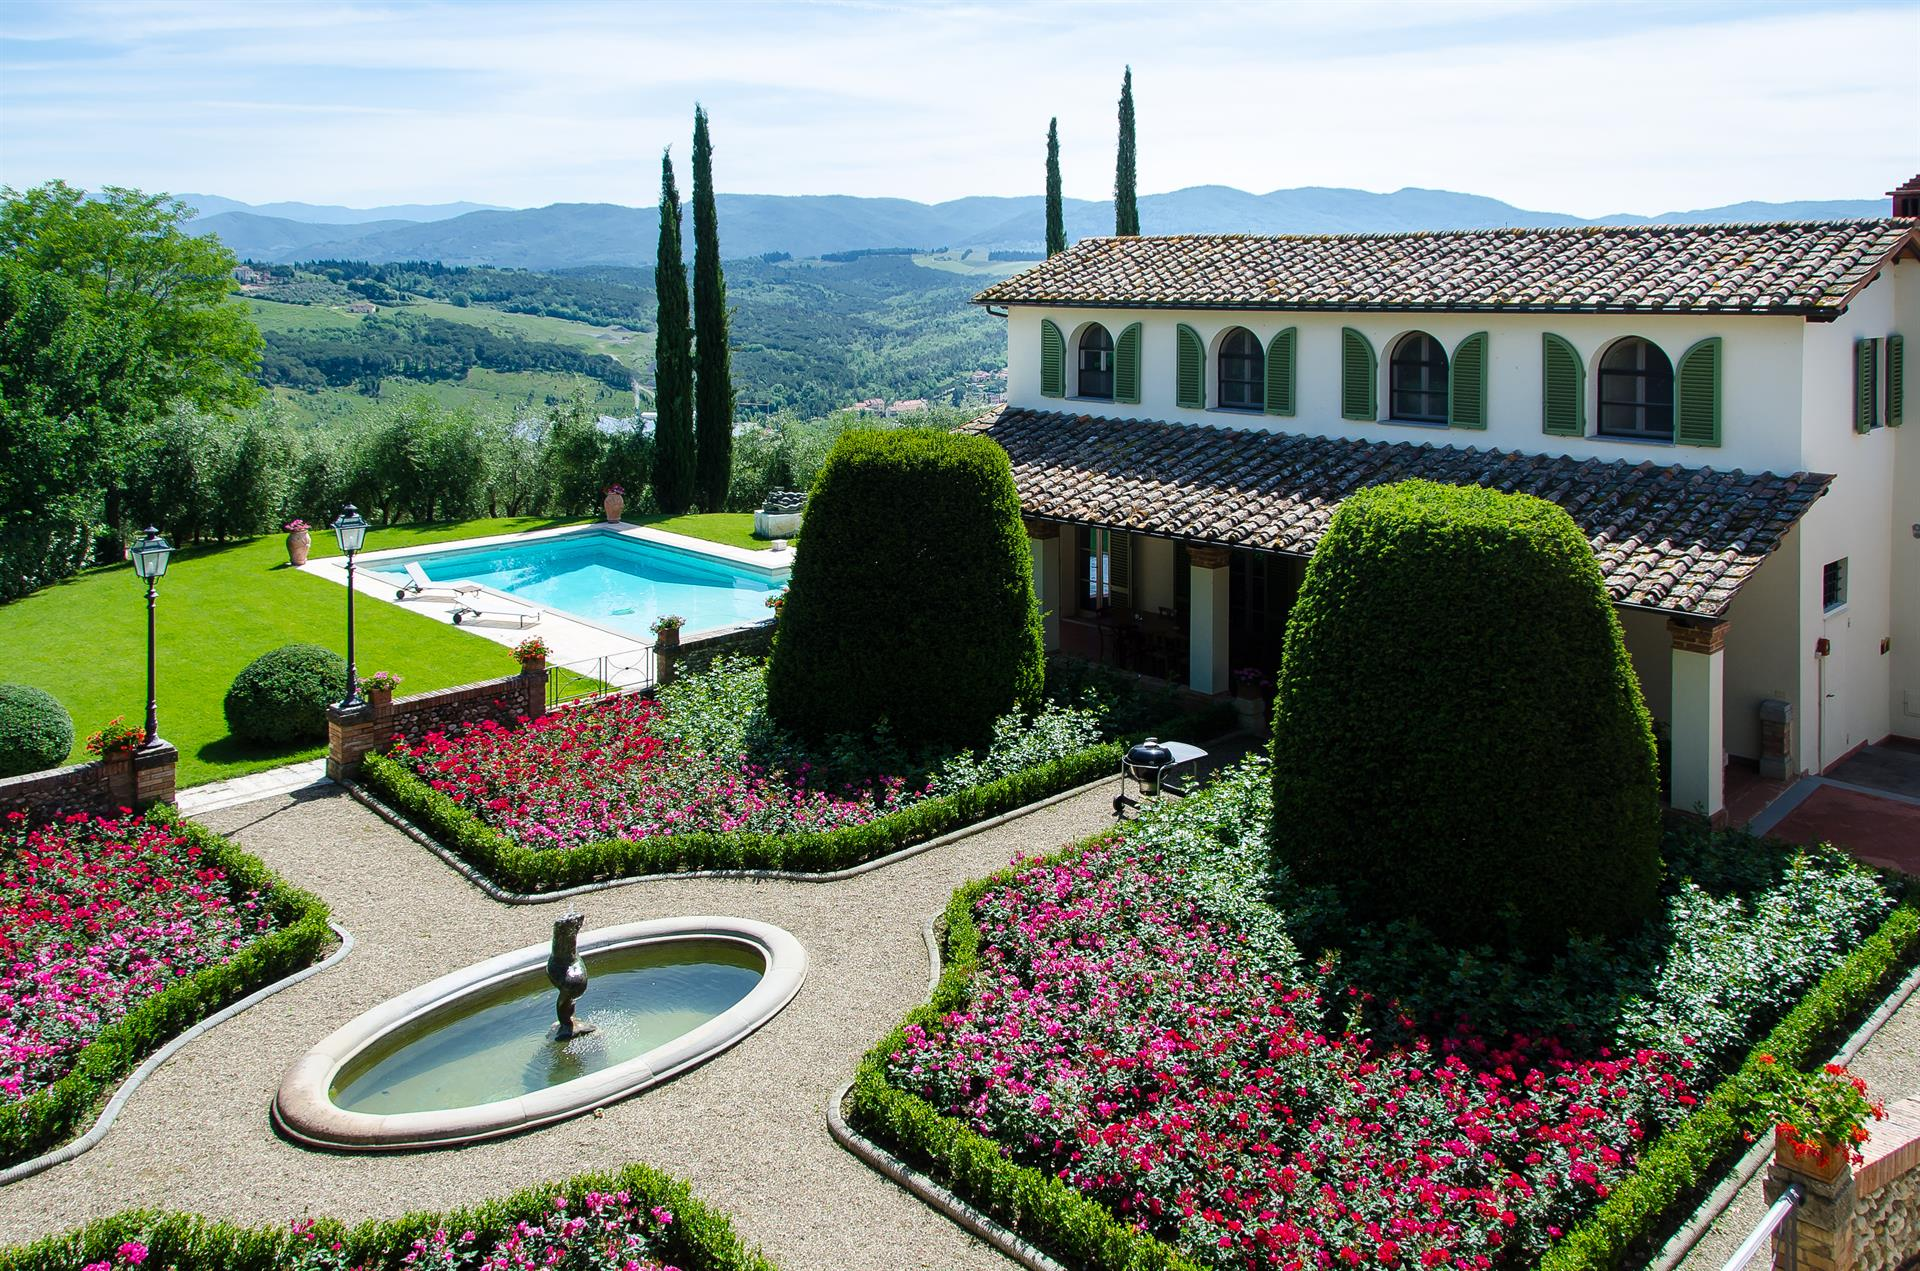 Dating from the 13th century, this magnificent estate in the Chianti Classico hills of Tuscany encompasses more than 10 acres complete with vineyards, olive groves, cypress trees, and forests.